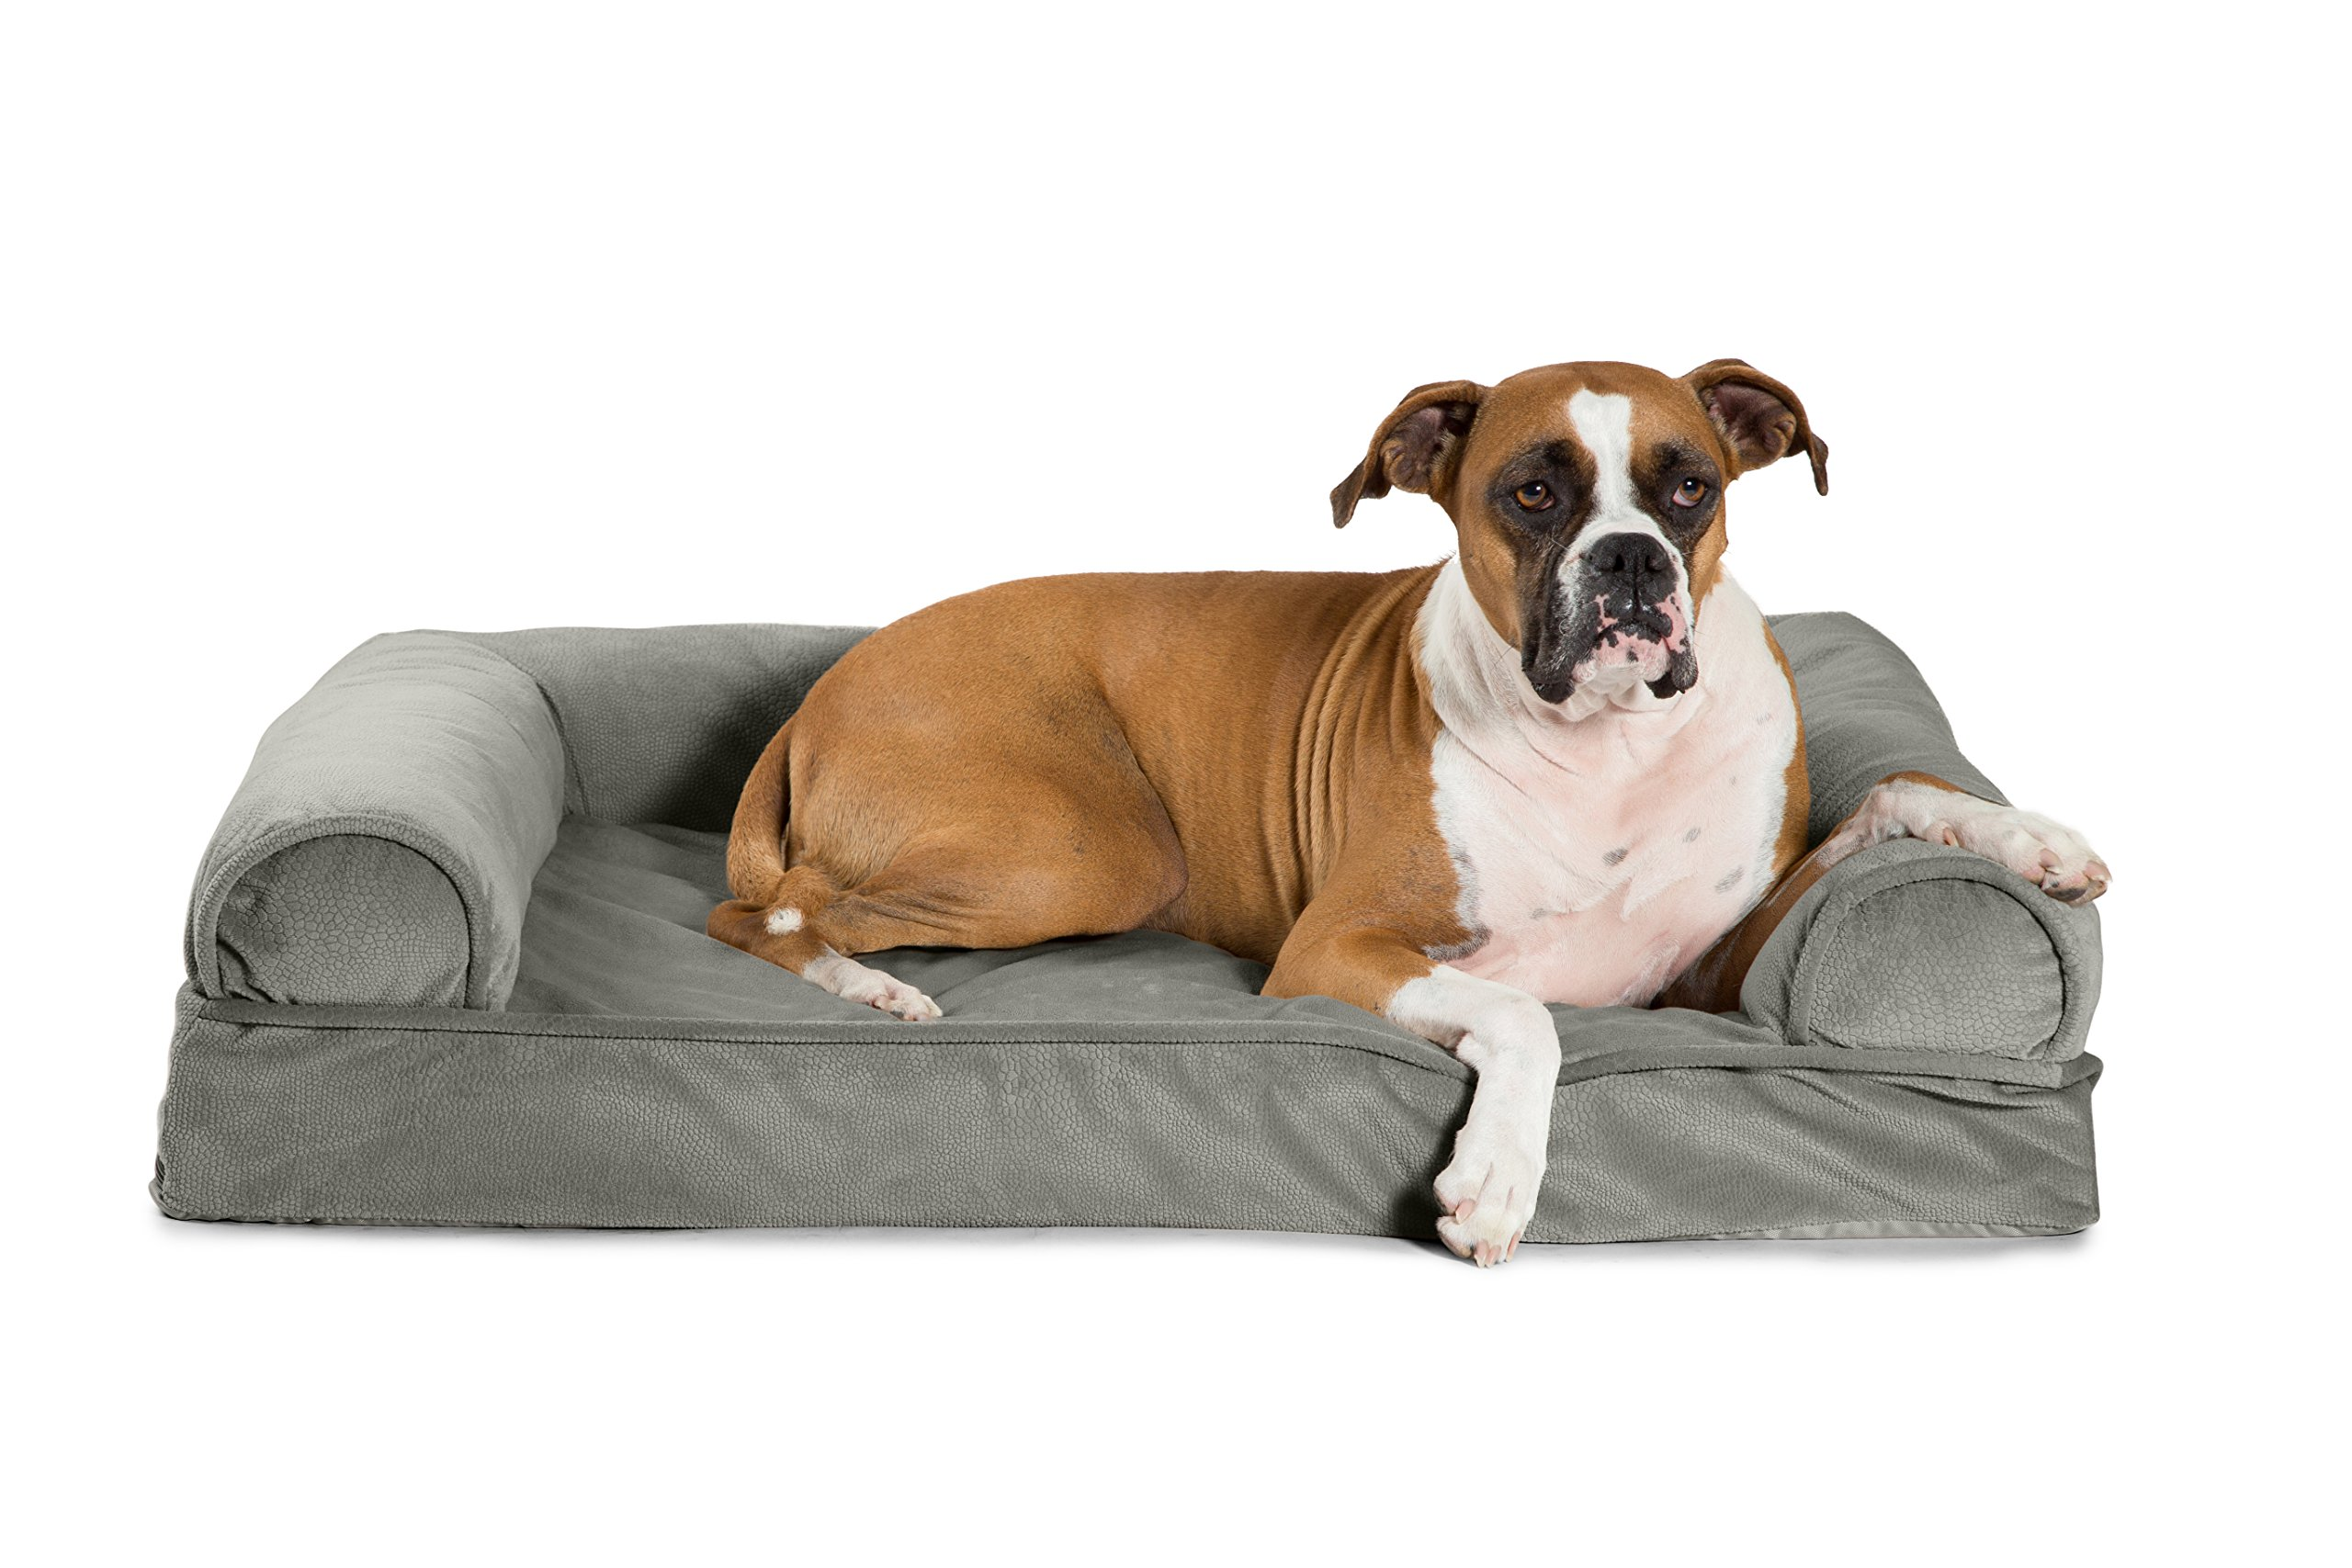 Best Friends by Sheri Orthopedic Joint Relief Bolster Sofa - Luxury Dog Bed with CertiPUR High-Density USA Foam for Superior Support and Cozy Comfort - Removable Zippered Cover, Machine Washable, Water-Resistant Bottom - For Medium Pets Up to 50lbs